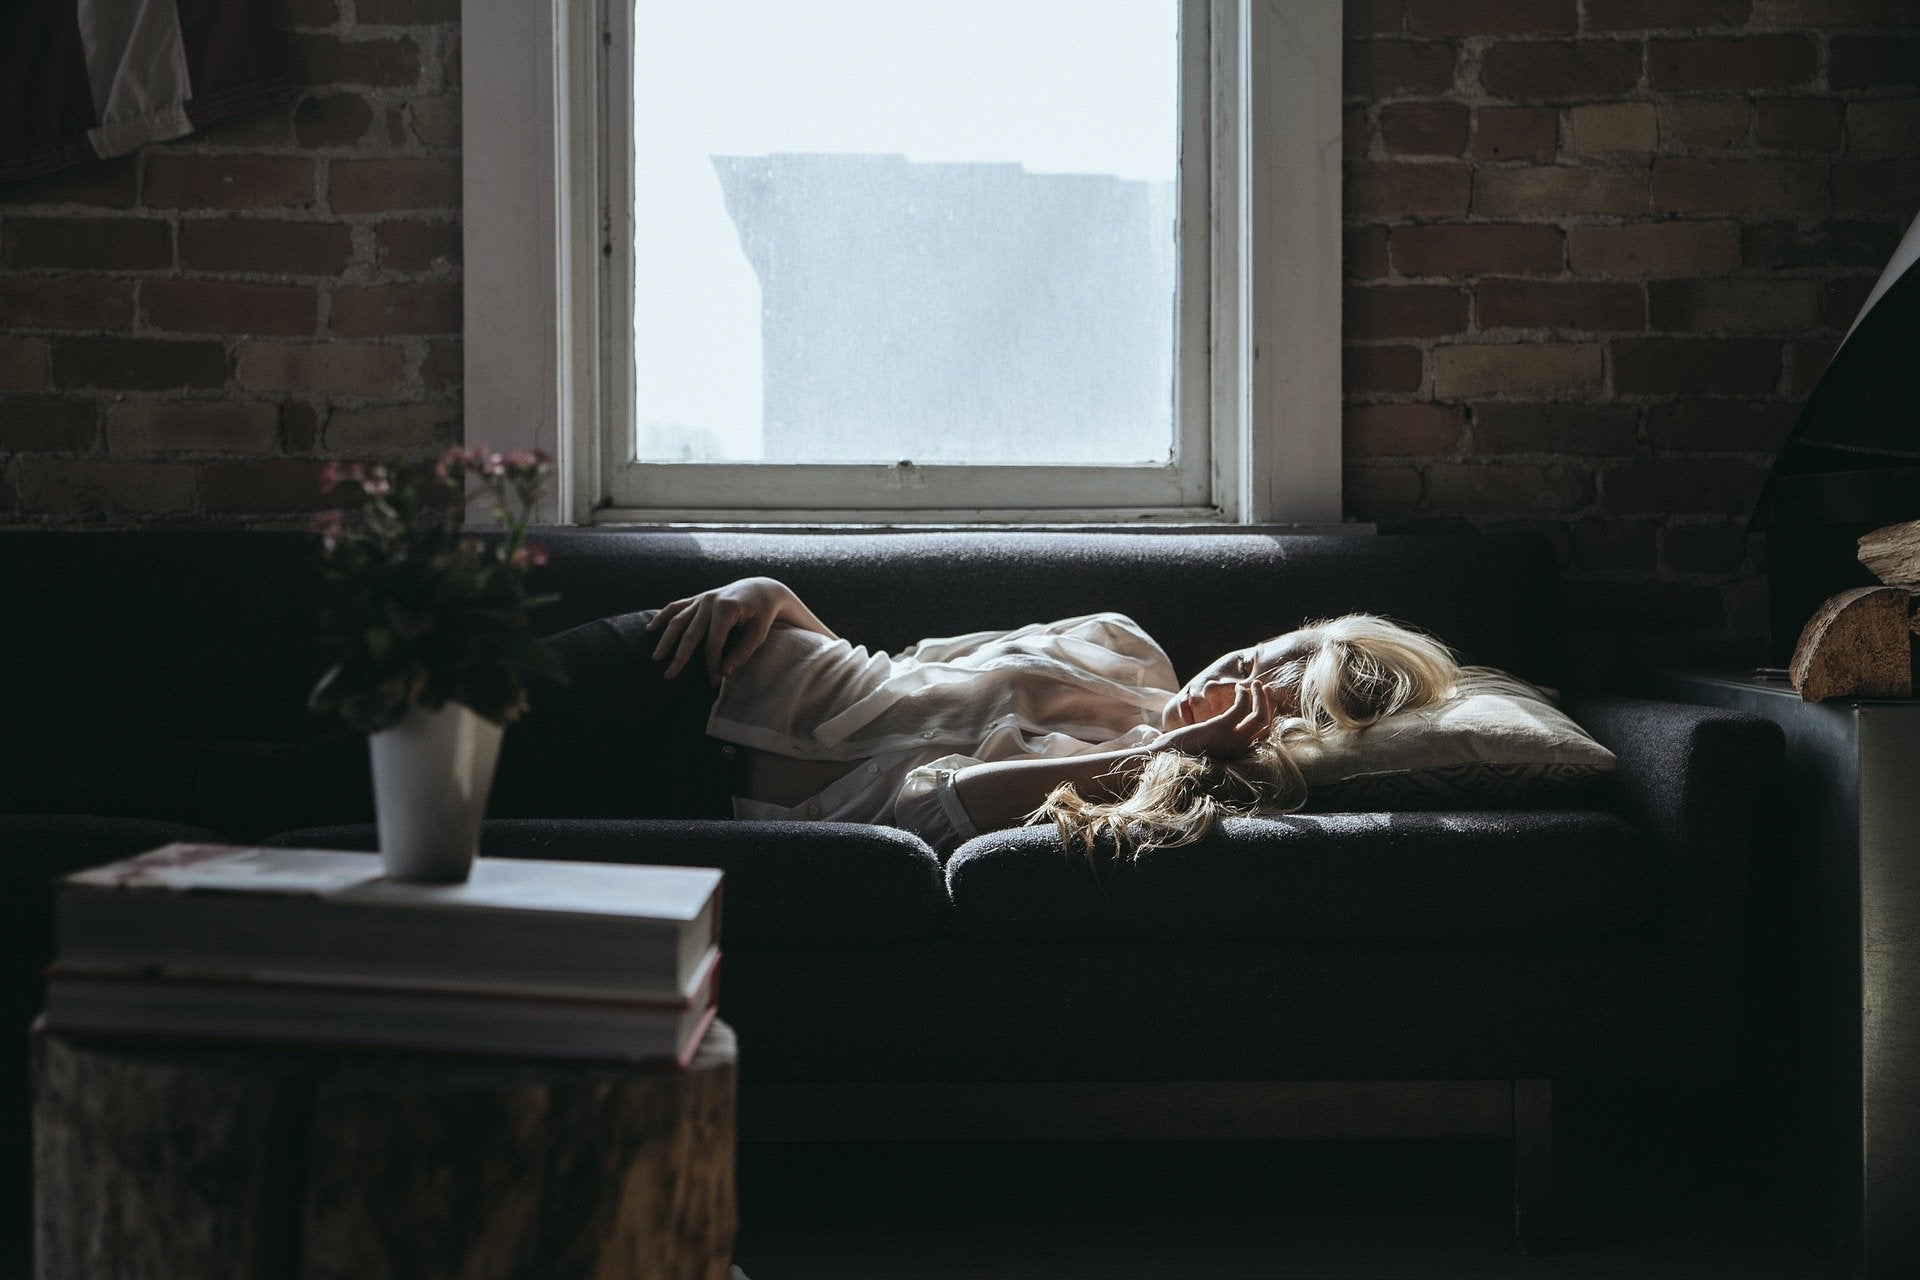 Perimenopause supplements: A woman sleeps on a couch